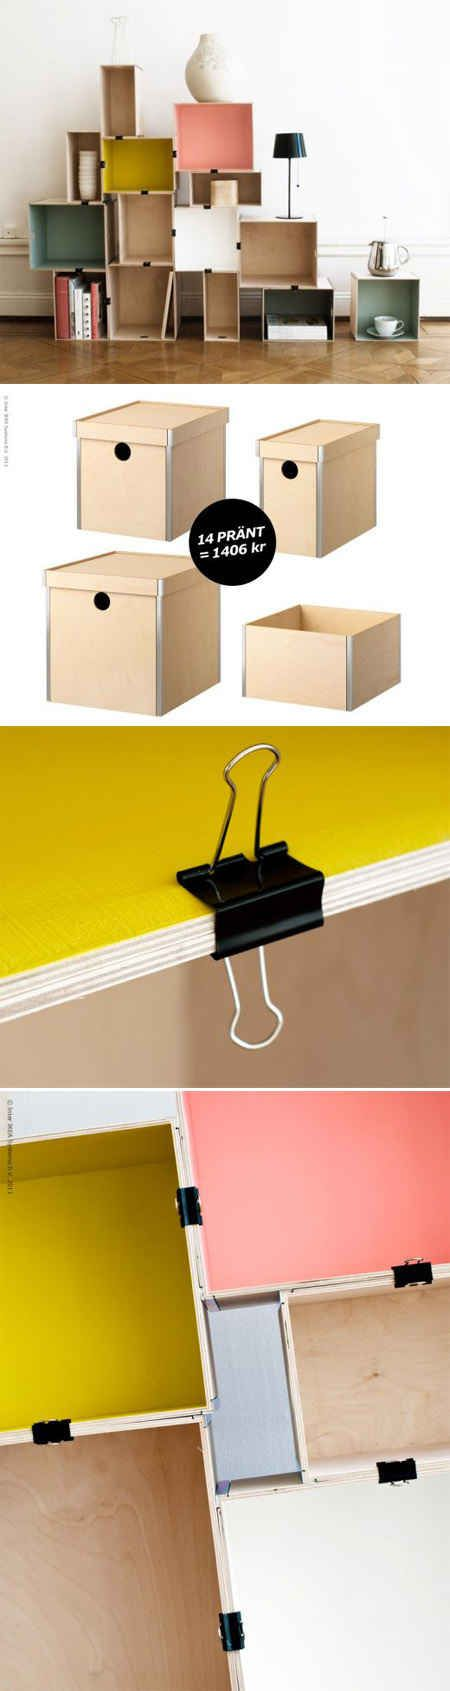 Box Shelves from Ikea, Connected with Ordinary Office Binder Clips